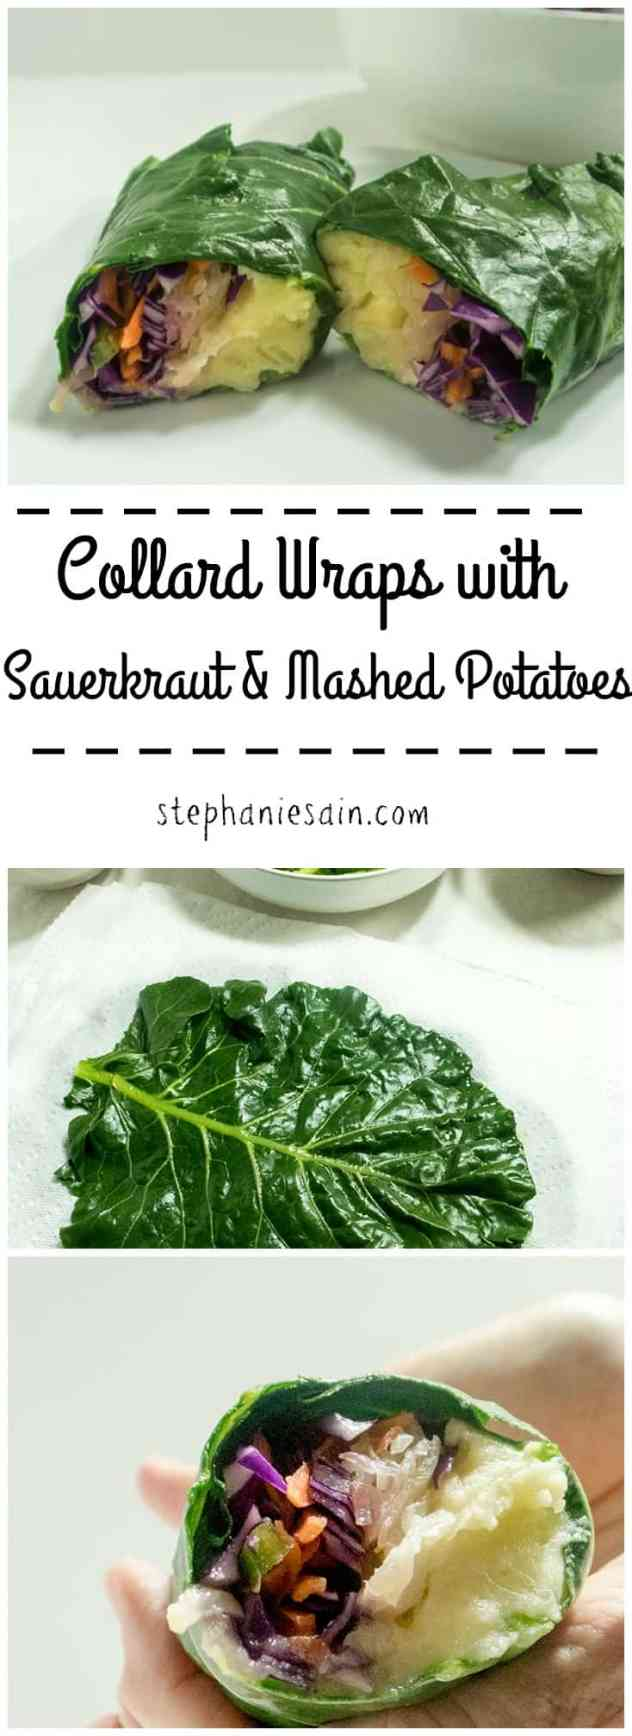 Collard Wraps with Sauerkraut & Mashed Potatoes are an easy, healthy, tasty meal that can be customized with any of your favorite fillings. Vegetarian, Gluten Free, & Vegan option.